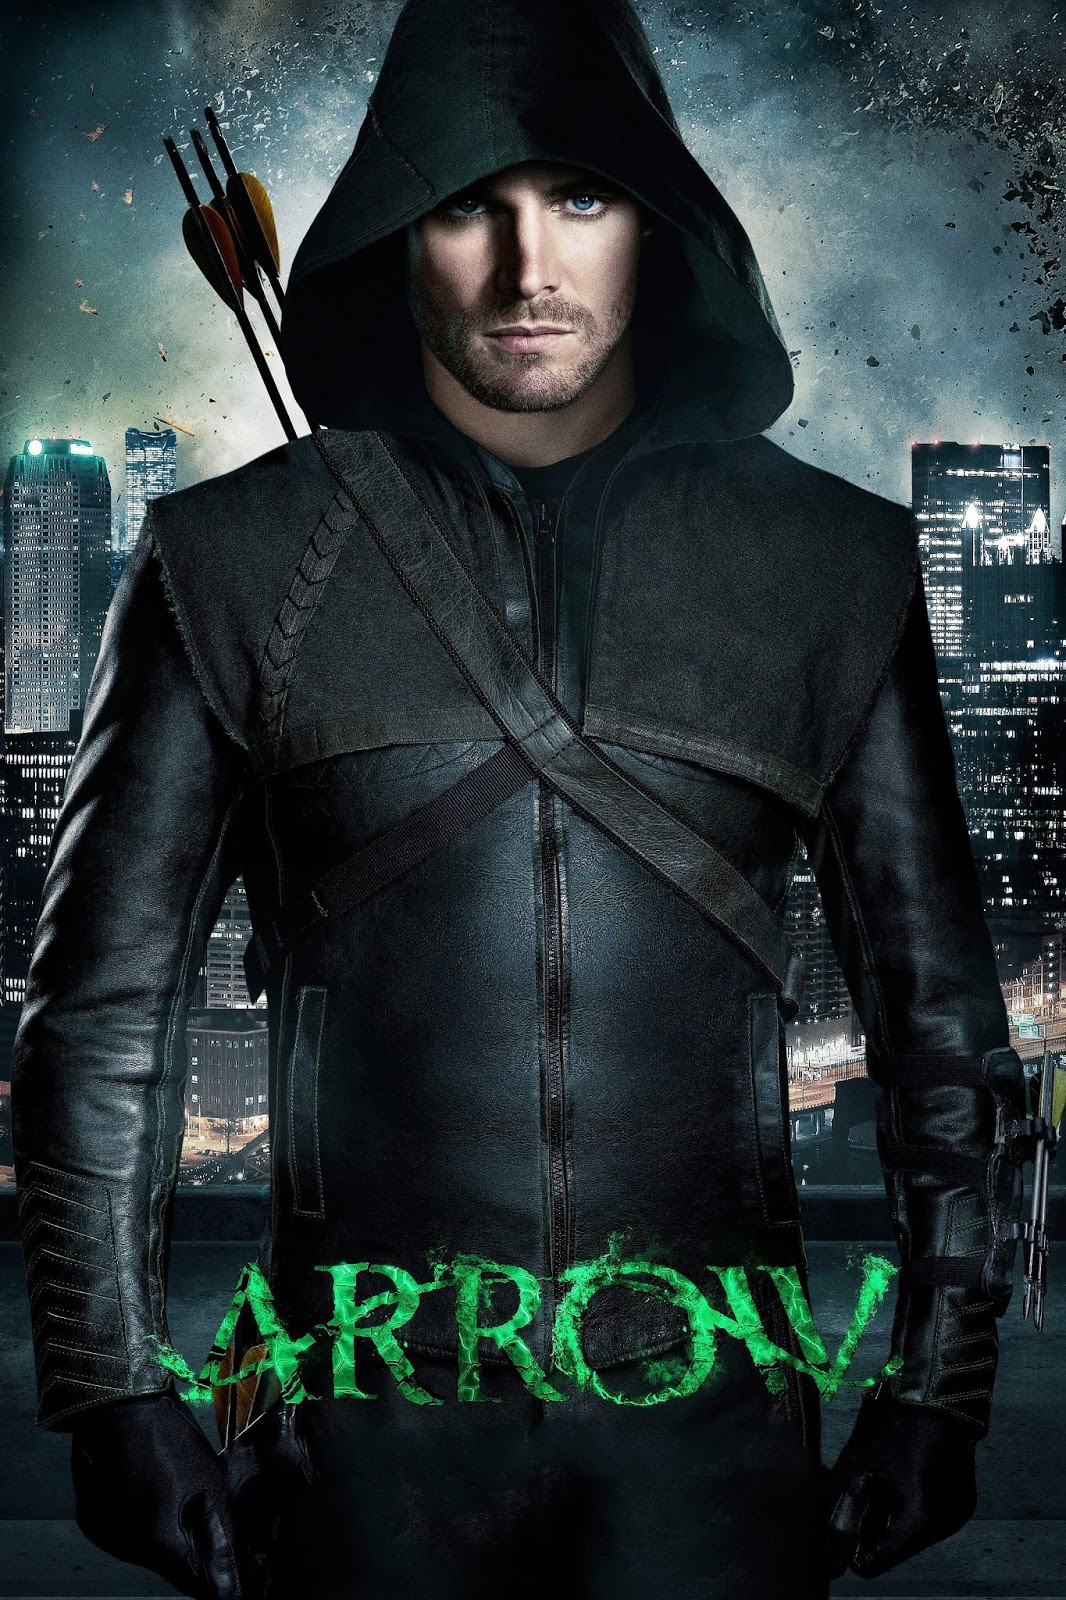 Arrow - Season 1 Trailer 3 [HD] - YouTube